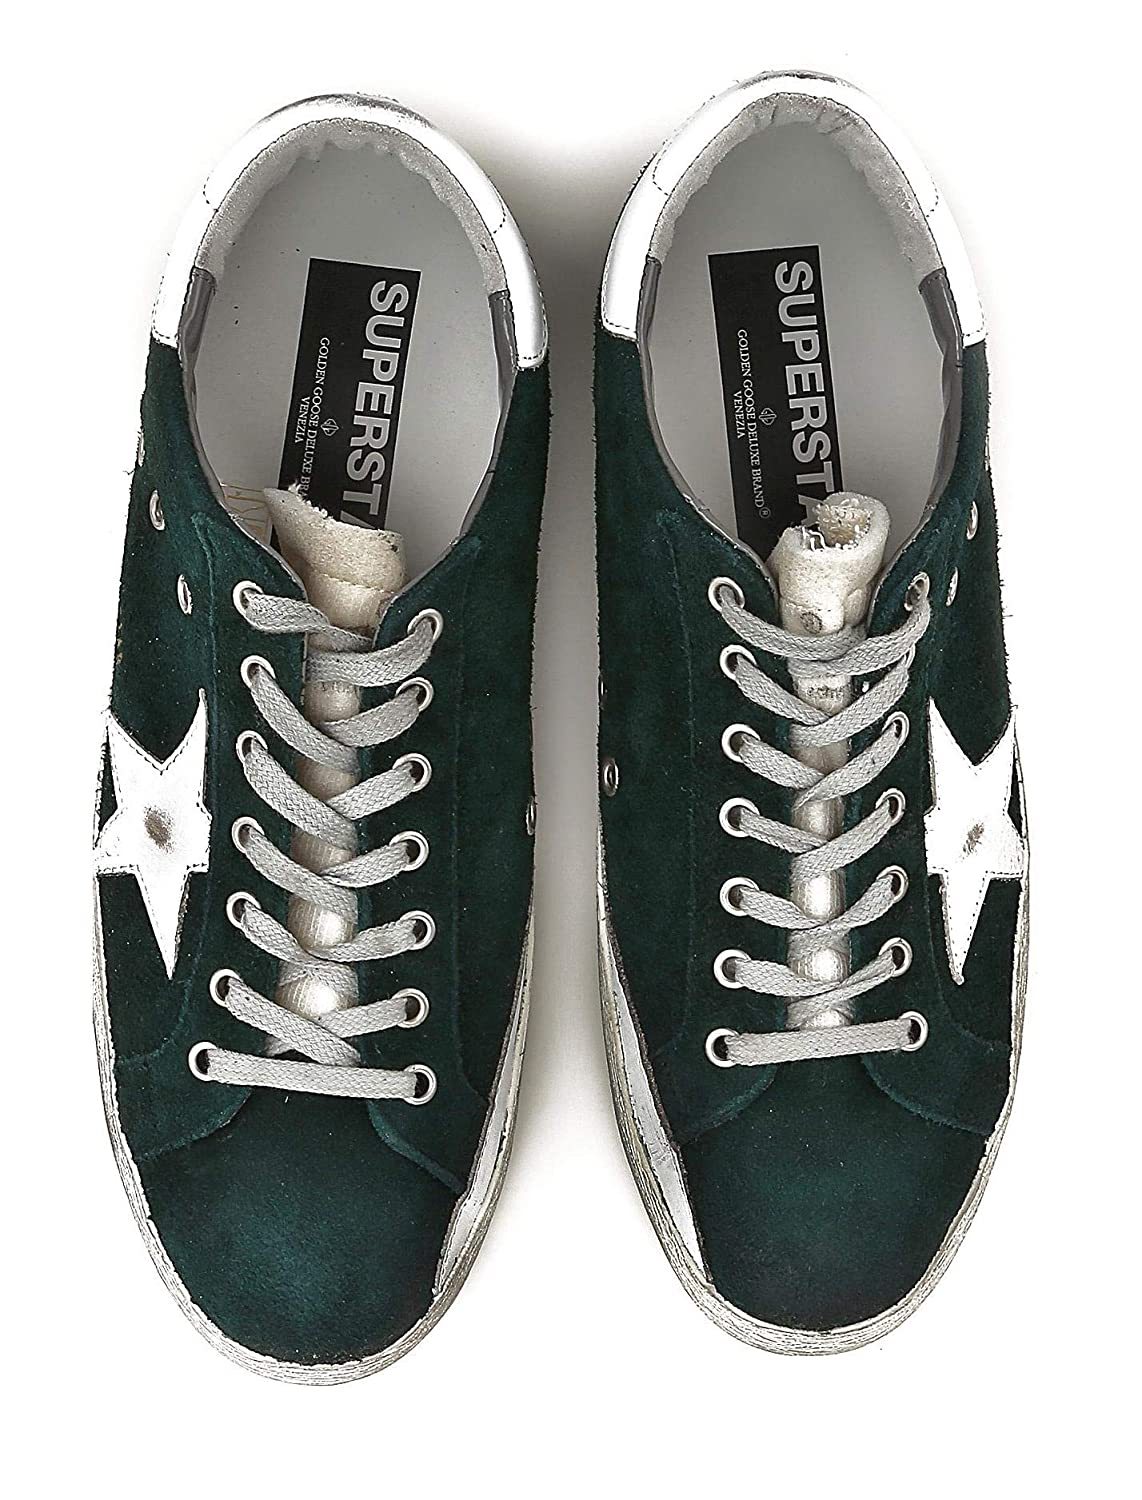 Golden Goose Scarpe Sneakers Uomo Vintage Superstar G32MS590.E78 Verde  Argento N. 39 EU  Amazon.it  Scarpe e borse 99402a8ce3d